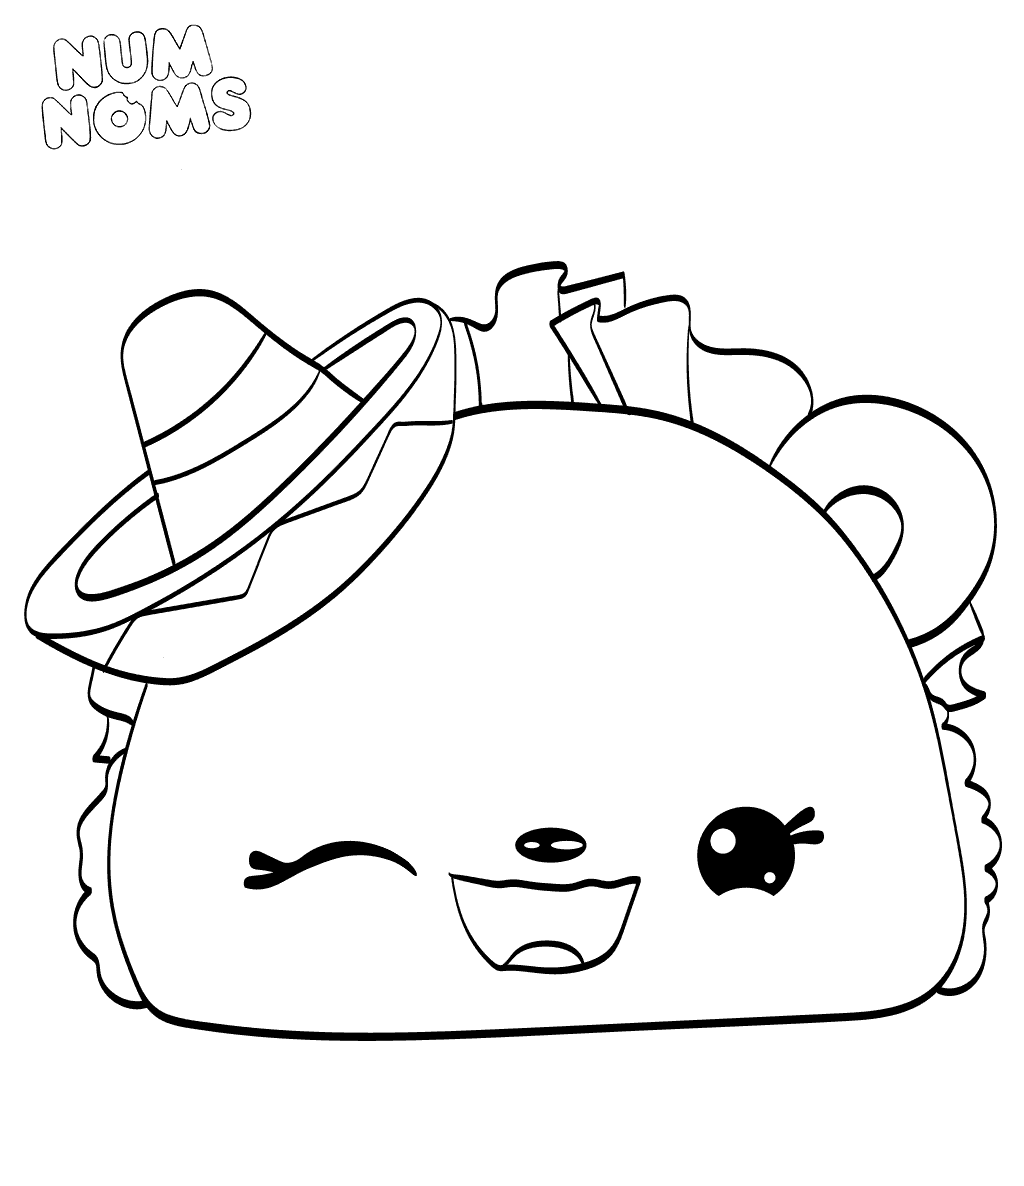 Coloring pages num noms tasty taco